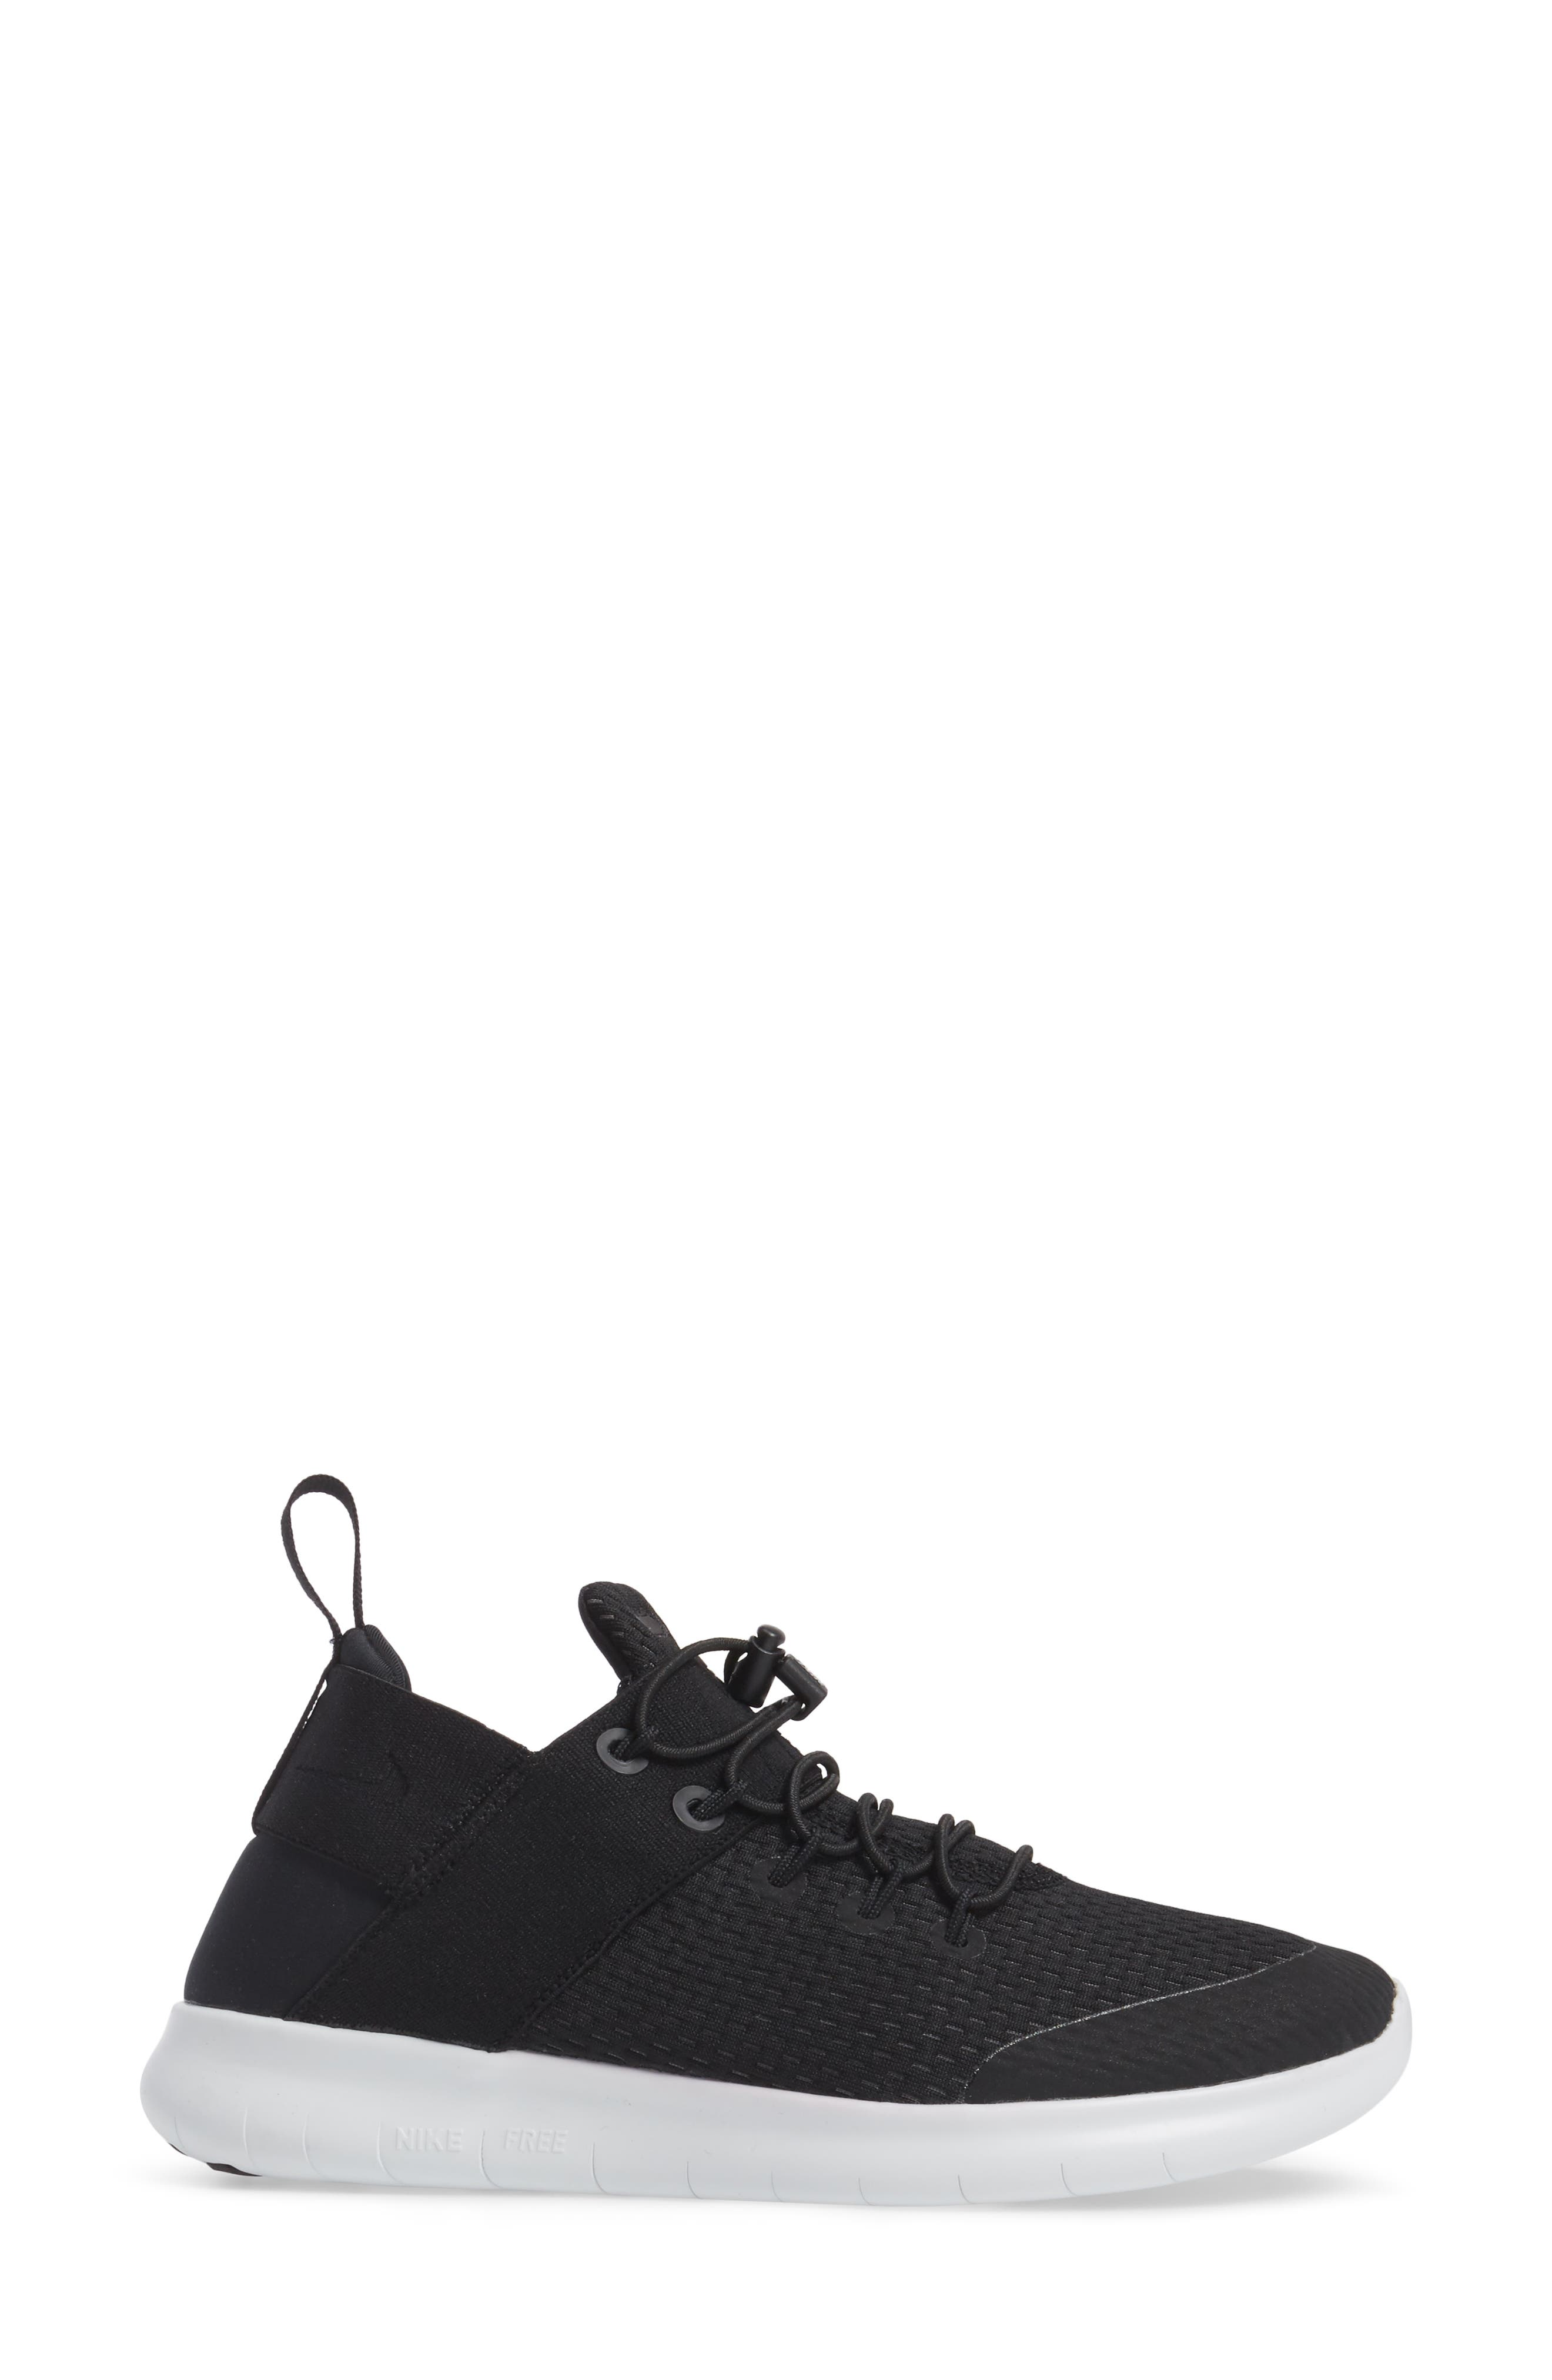 Free RN CMTR Running Shoe,                             Alternate thumbnail 3, color,                             Black/ Anthracite/ Off White